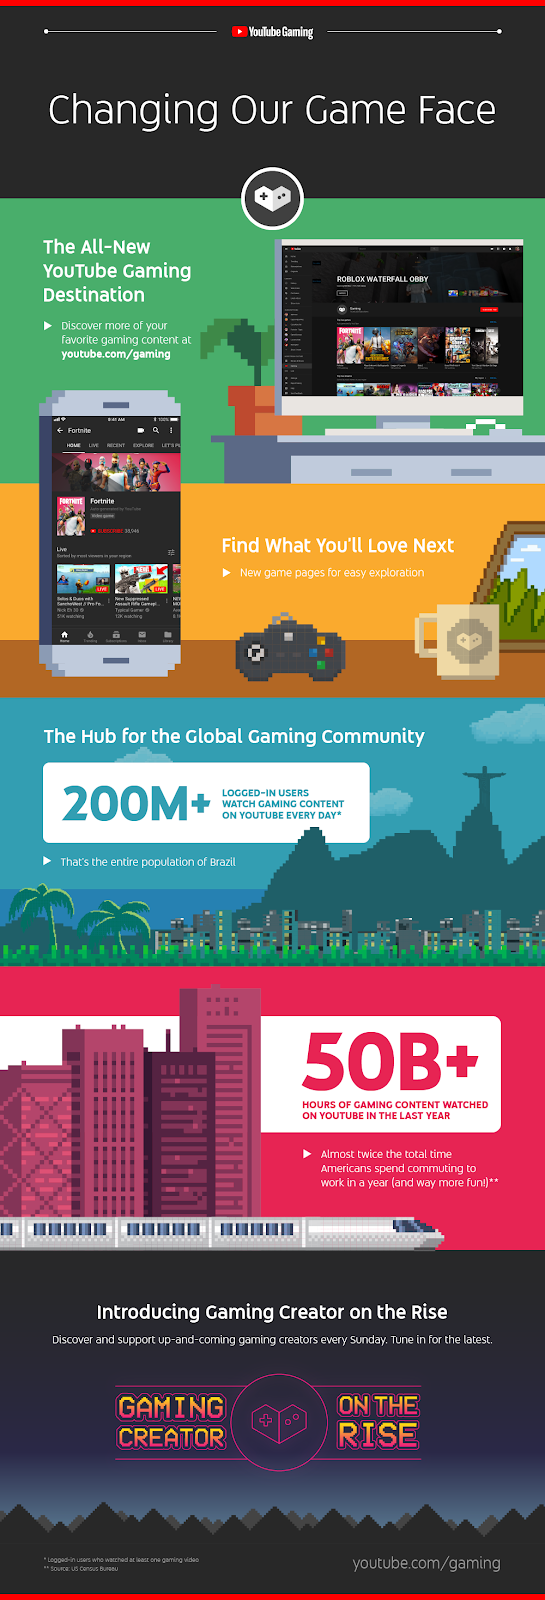 youtube_gaming_infographic